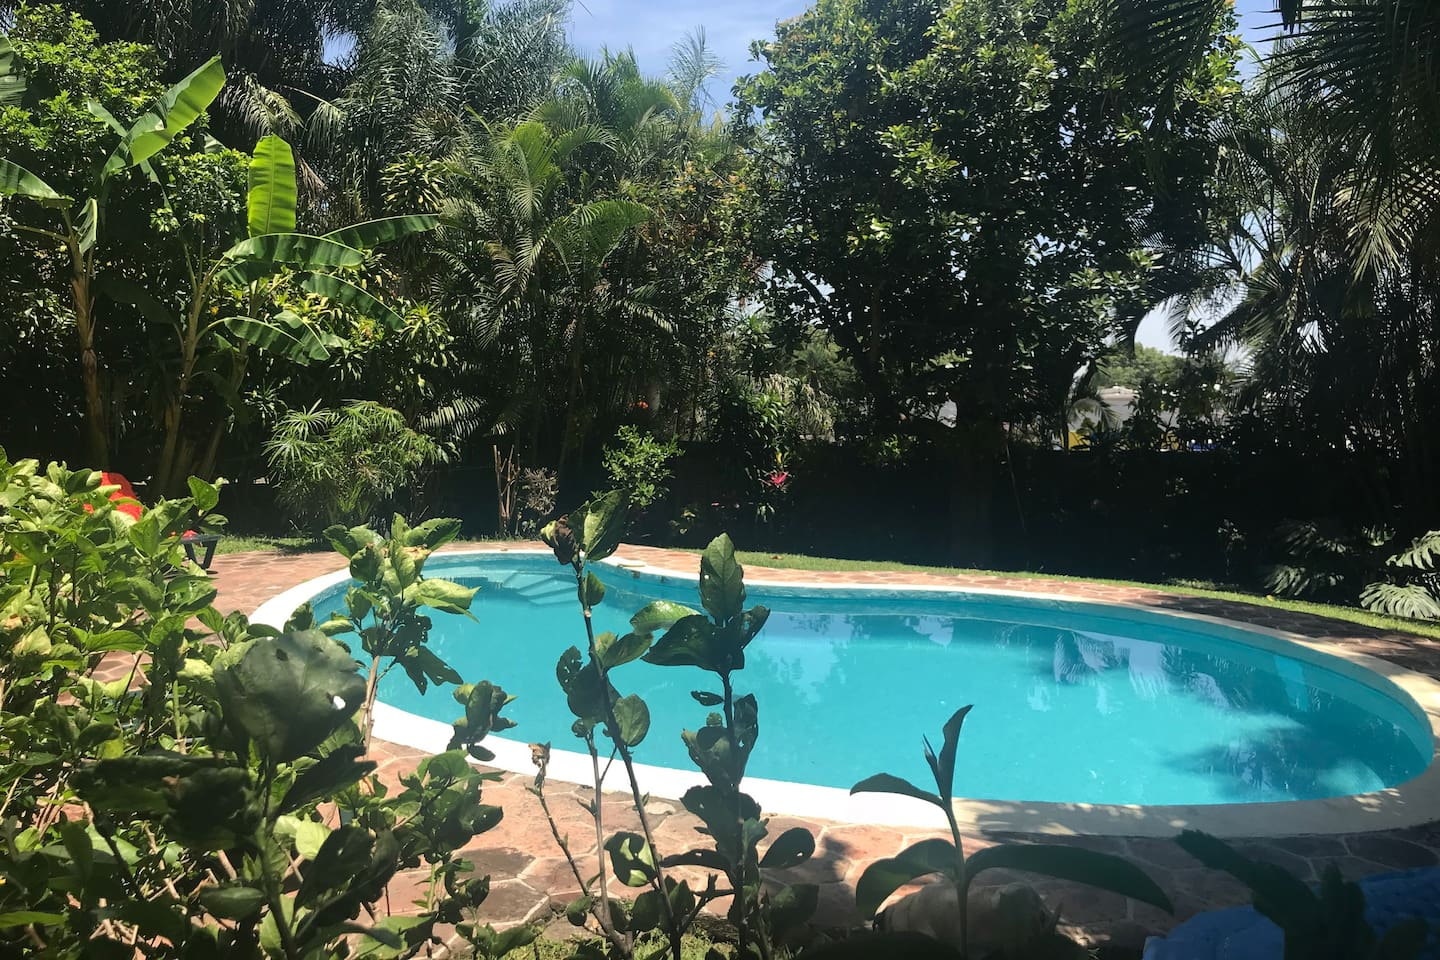 Enjoy the private pool and garden